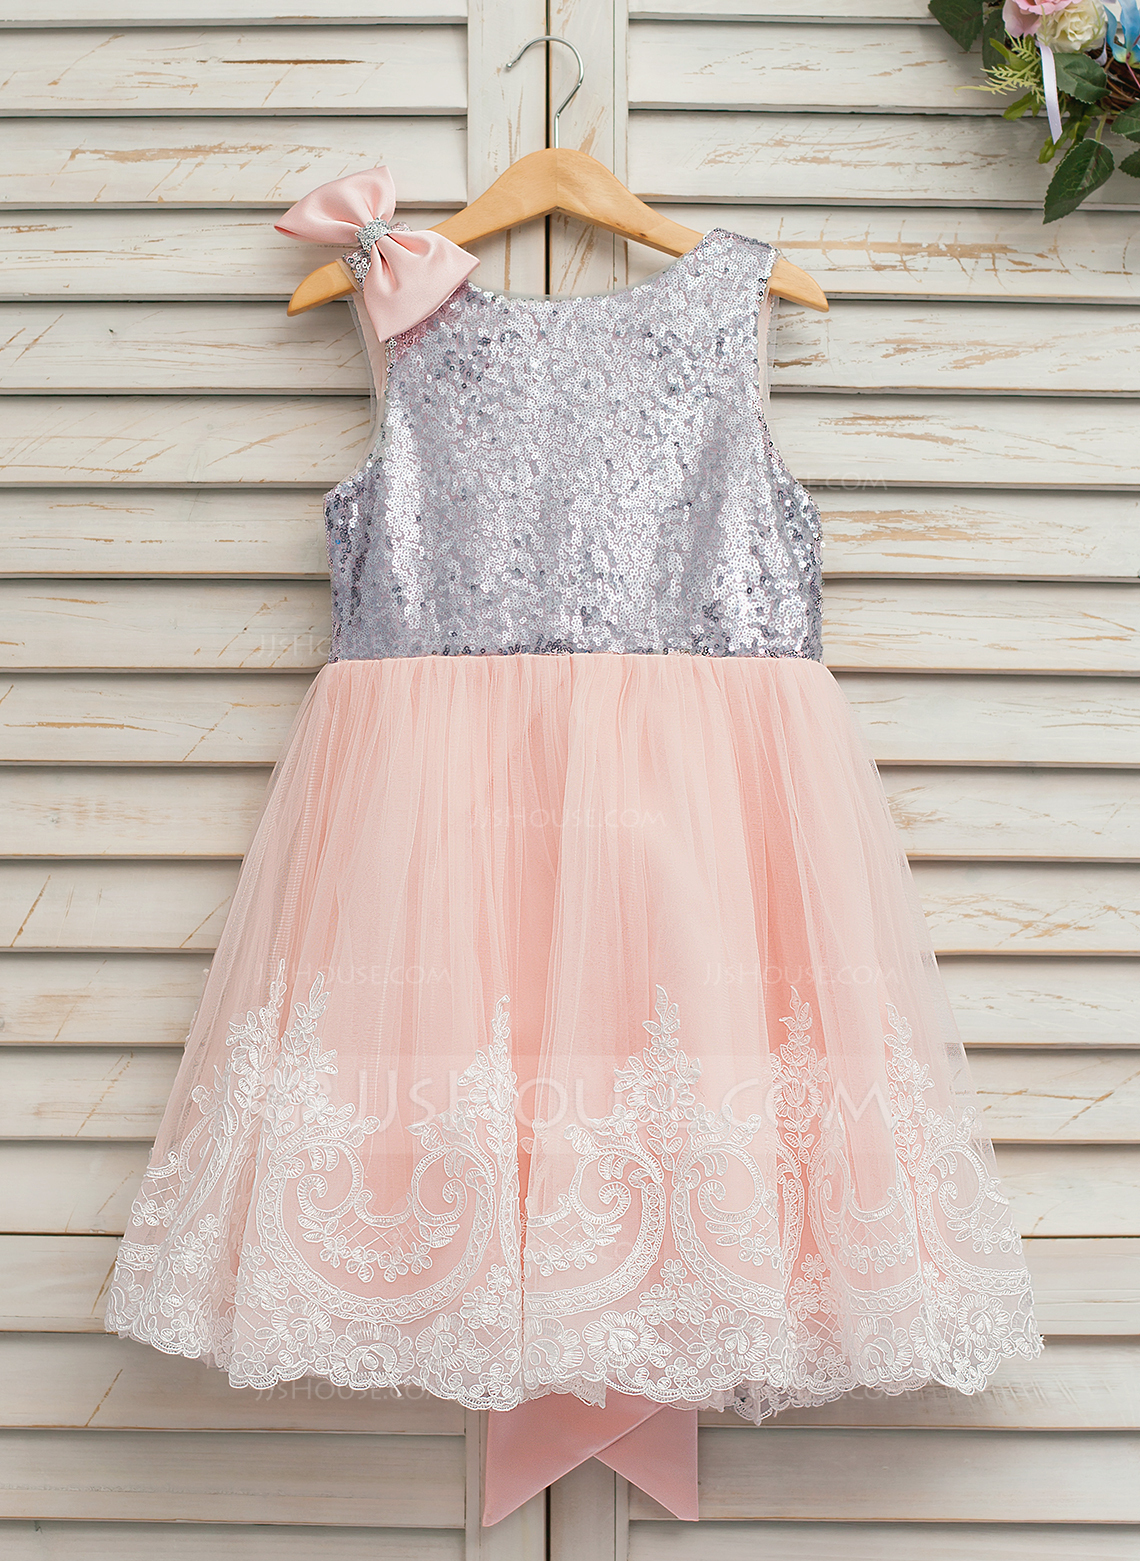 c837164302e67 A-Line/Princess Knee-length Flower Girl Dress - Tulle/Lace/. Loading zoom